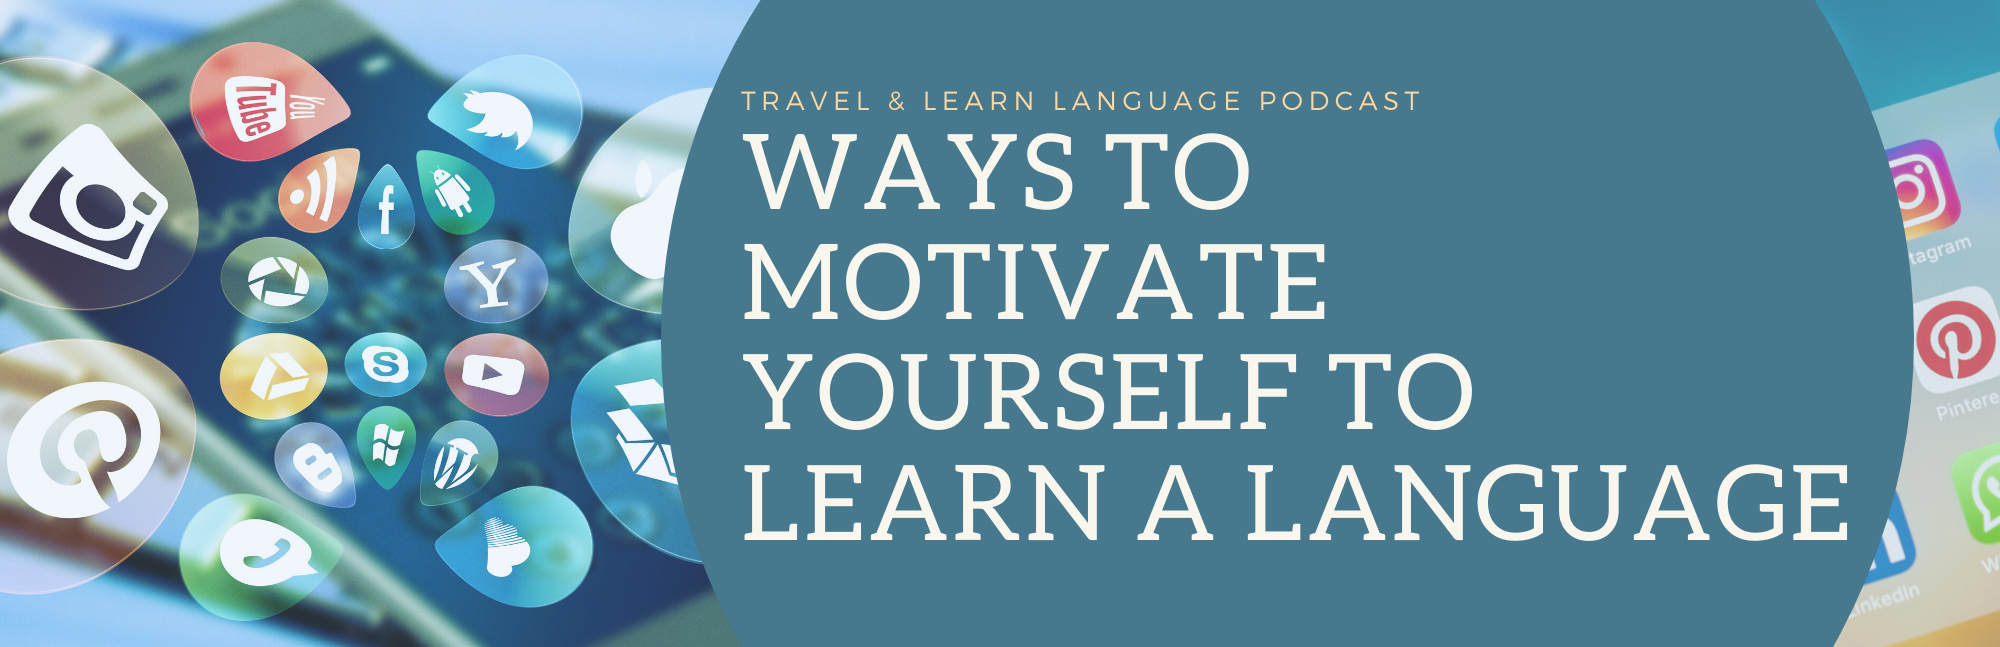 ways to motivate yourself to learn a language